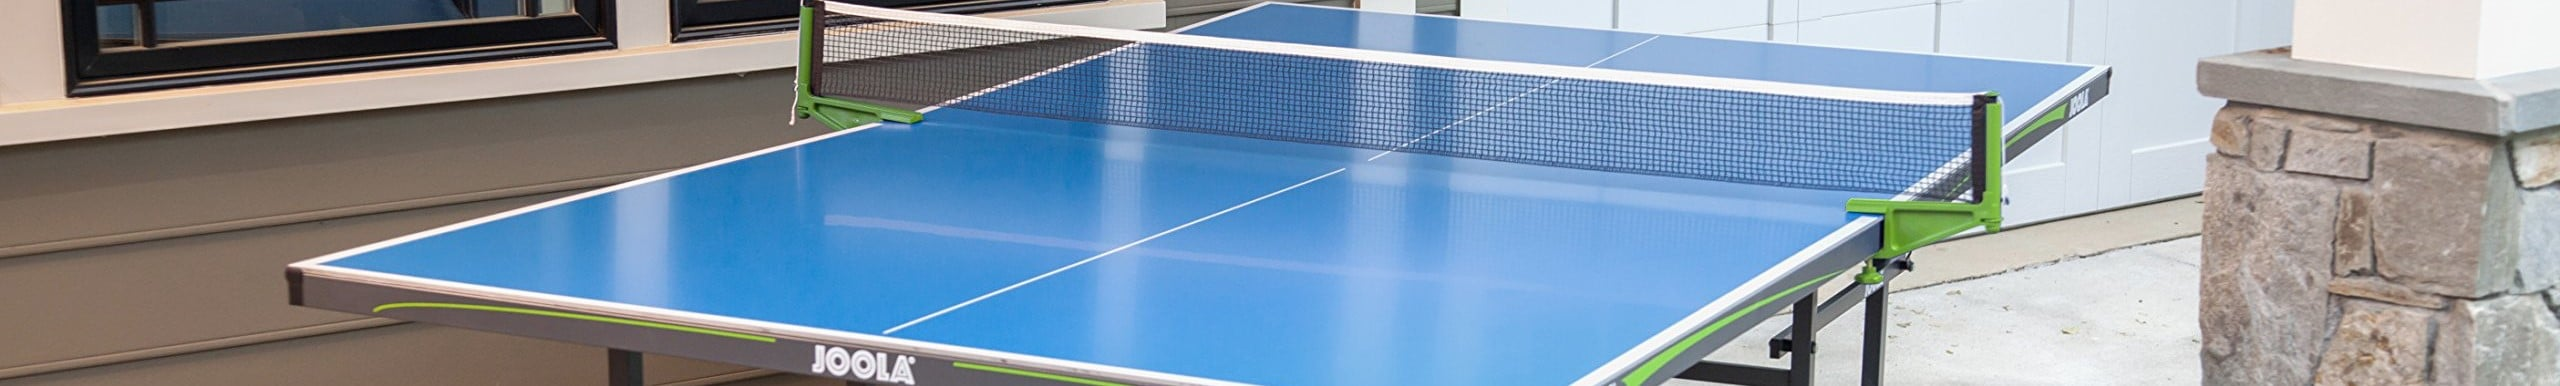 Best Ping Pong Tables Under 500 Reviewed in Detail